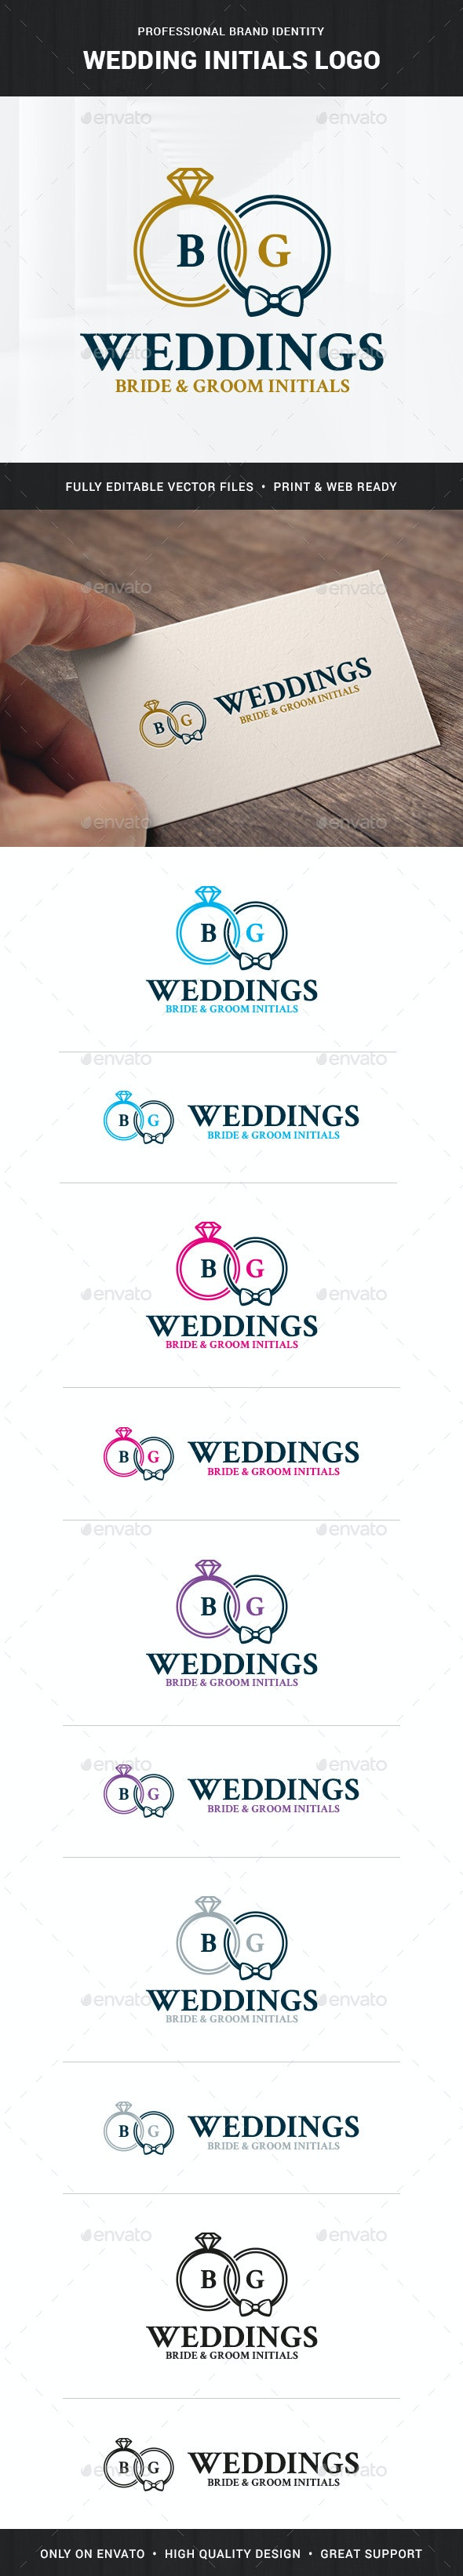 Wedding Initials Logo Template - Letters Logo Templates